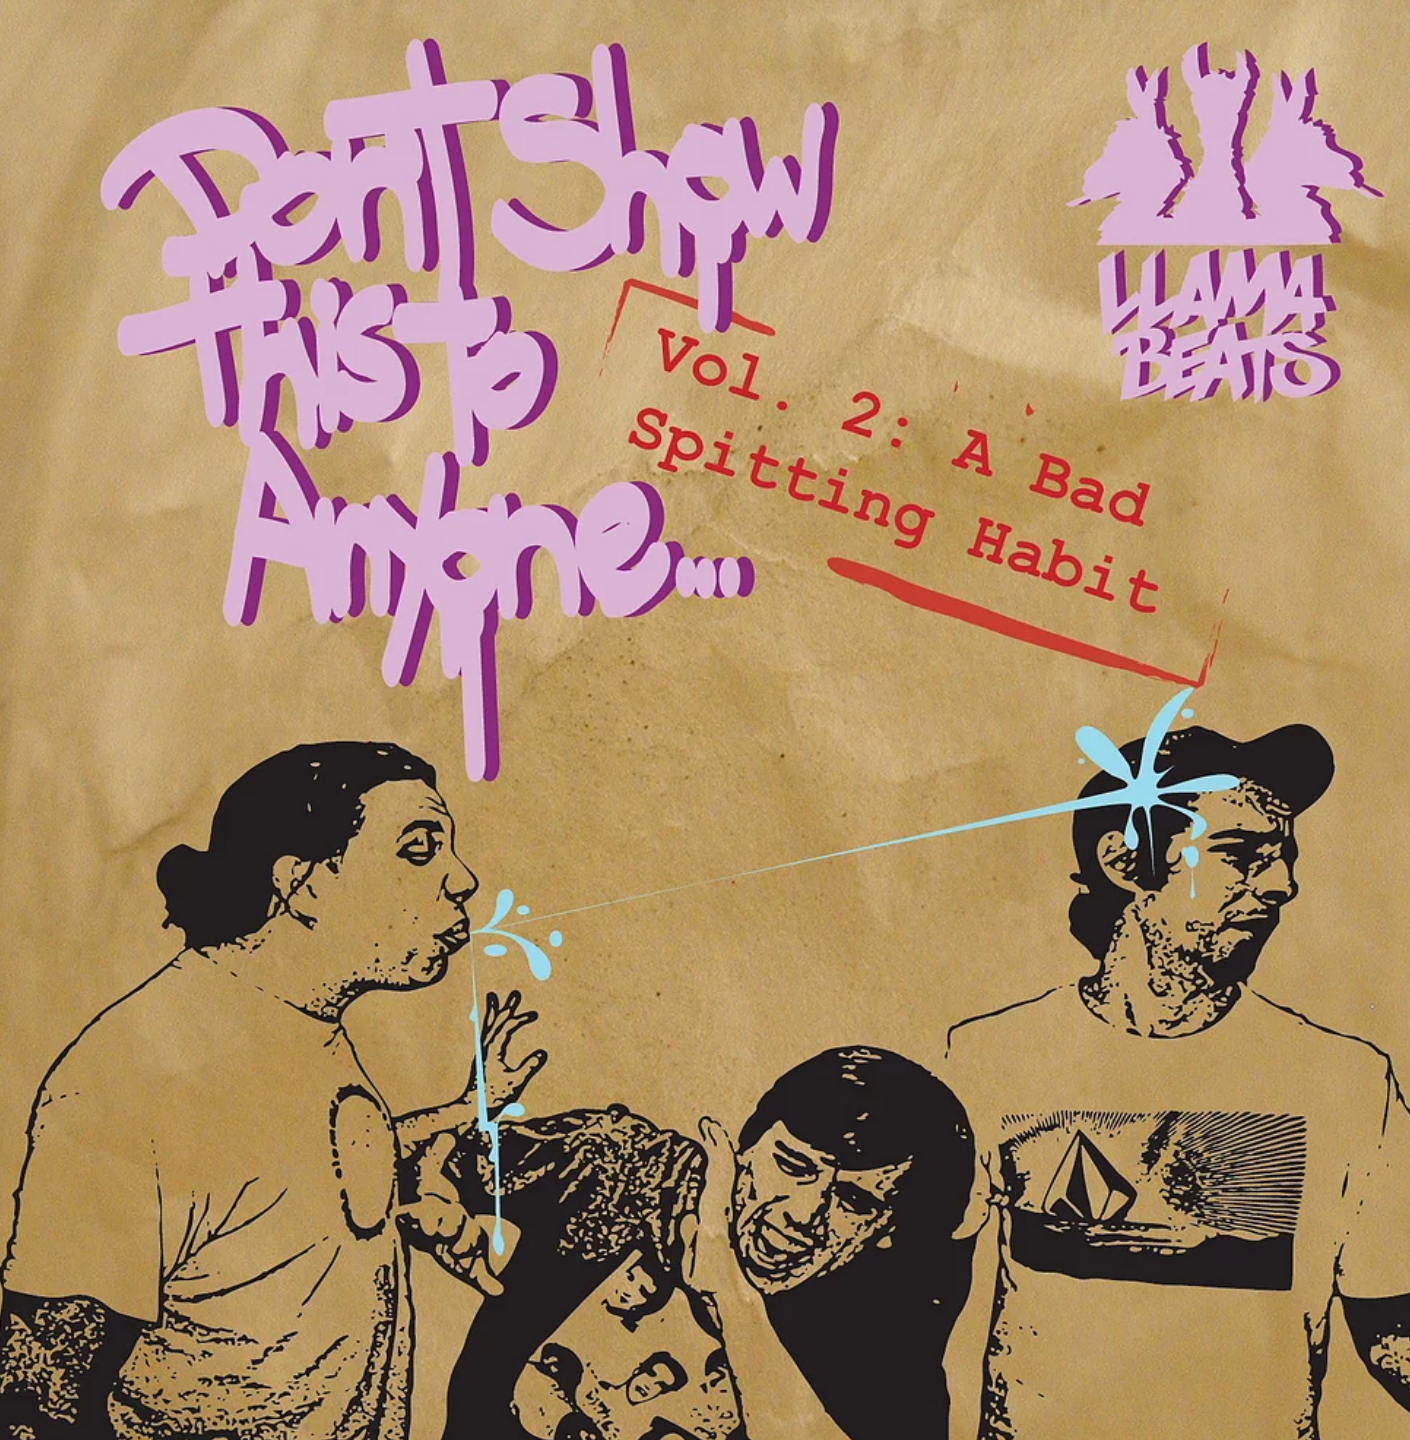 """""""Don't Show This To Anyone - Vol.2: A Bad Spitting Habit"""" by Llamabeats (2010) -  Stream & Download"""